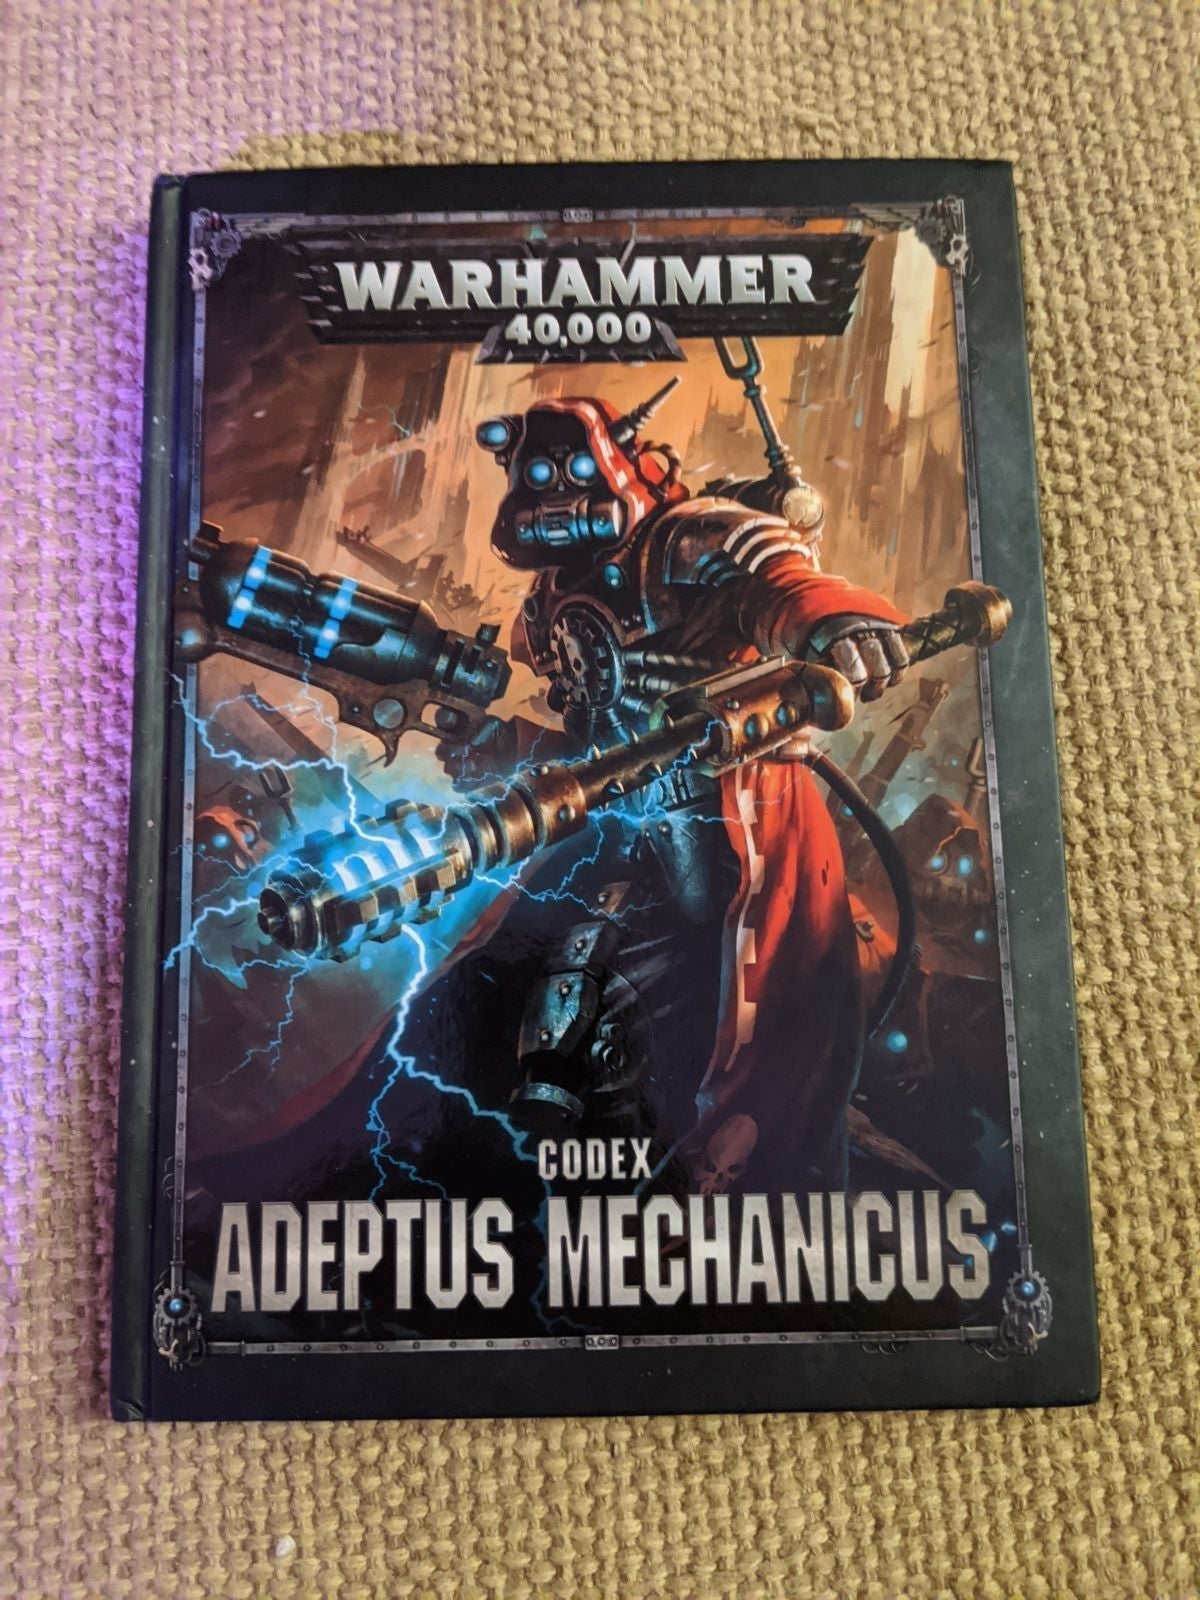 Warhammer 40k adeptus mechanicus codex 8